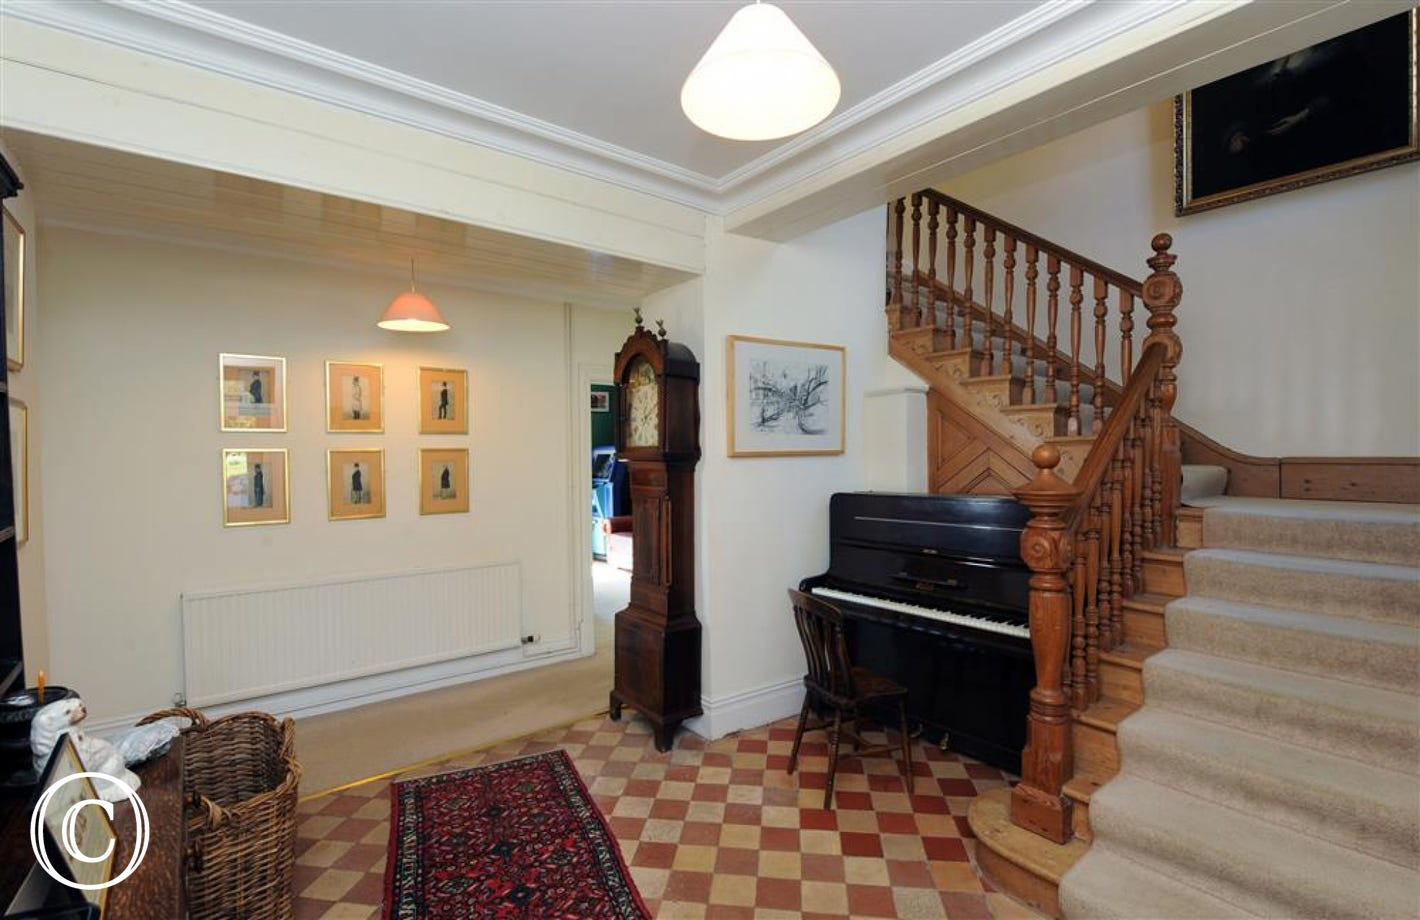 Enter into the welcoming hall with impressive pine staircase.